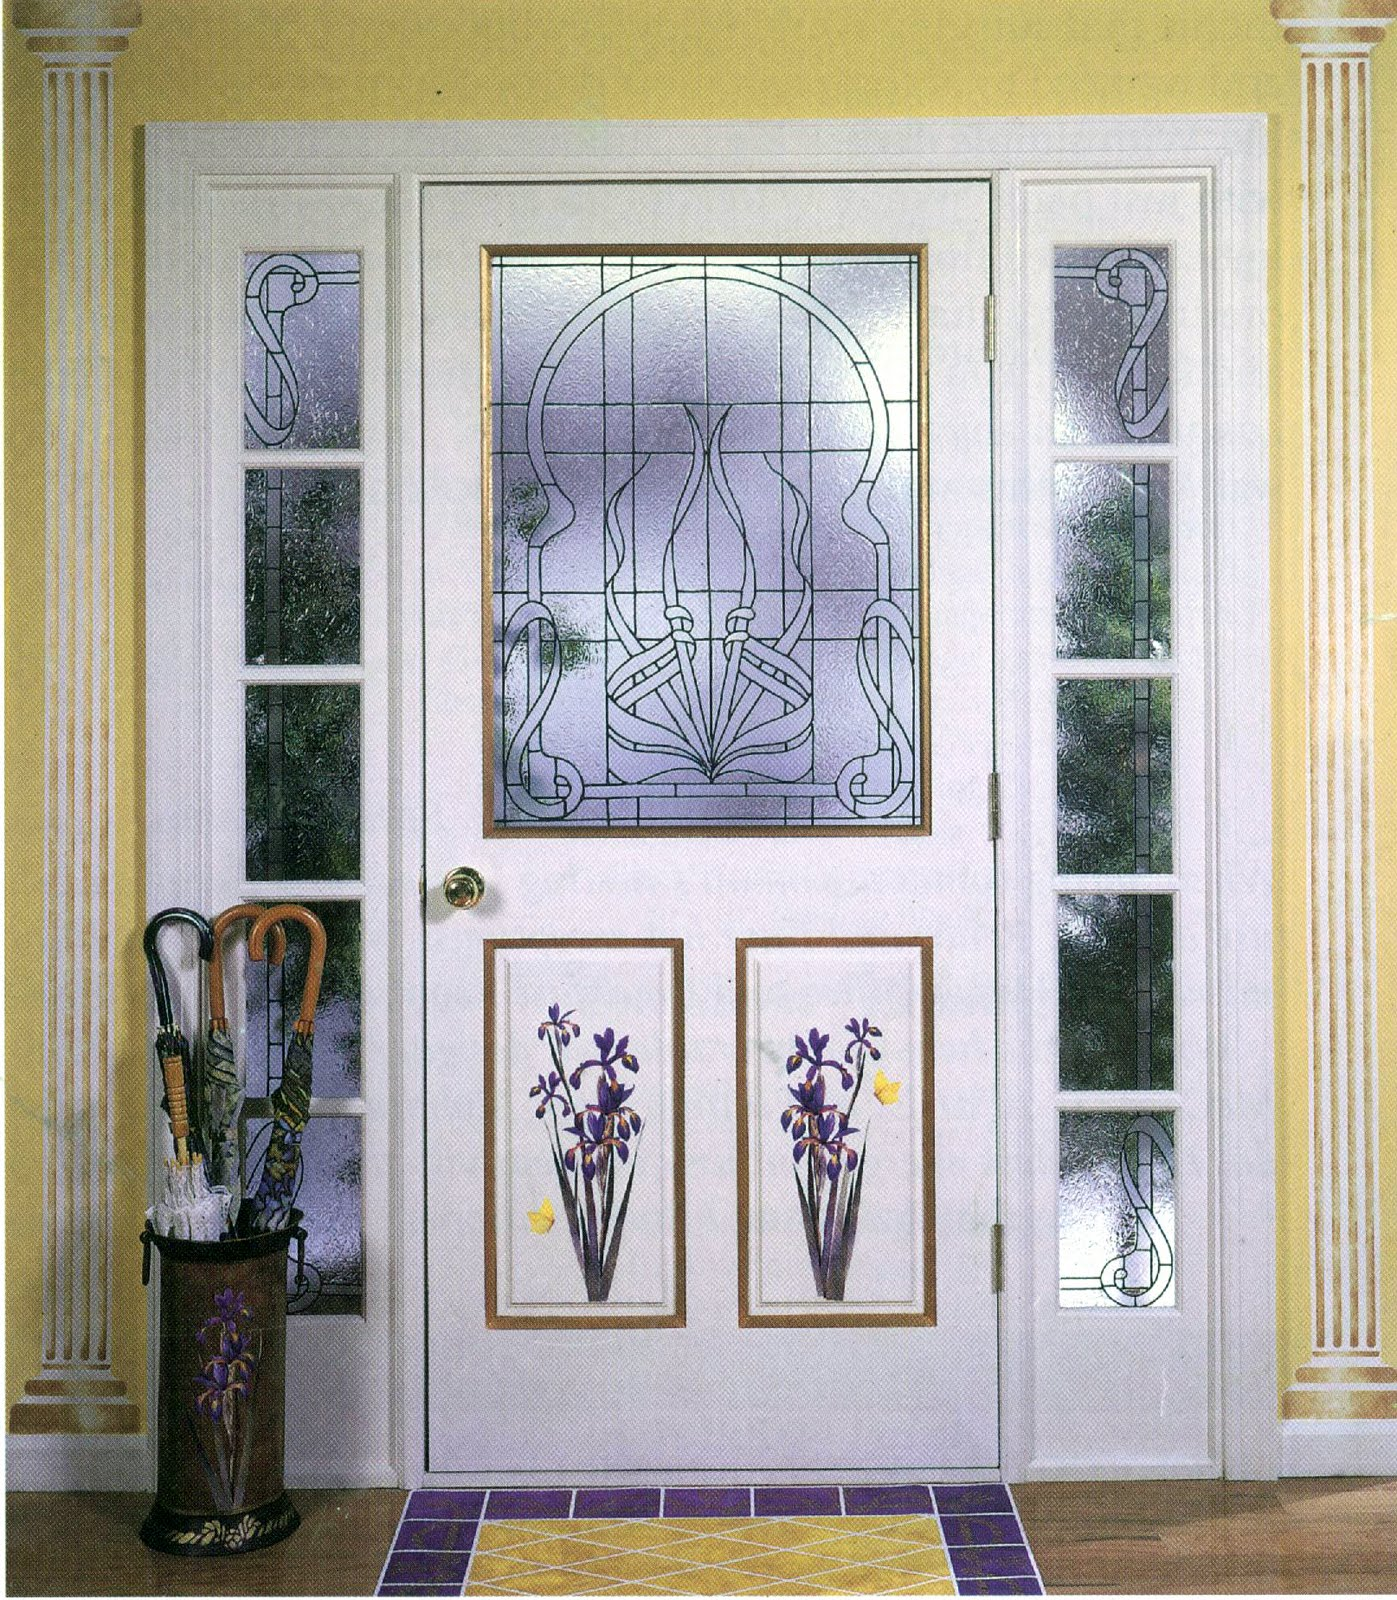 Gallery glass class speaking of irises and doorways speaking of irises and doorways geenschuldenfo Images